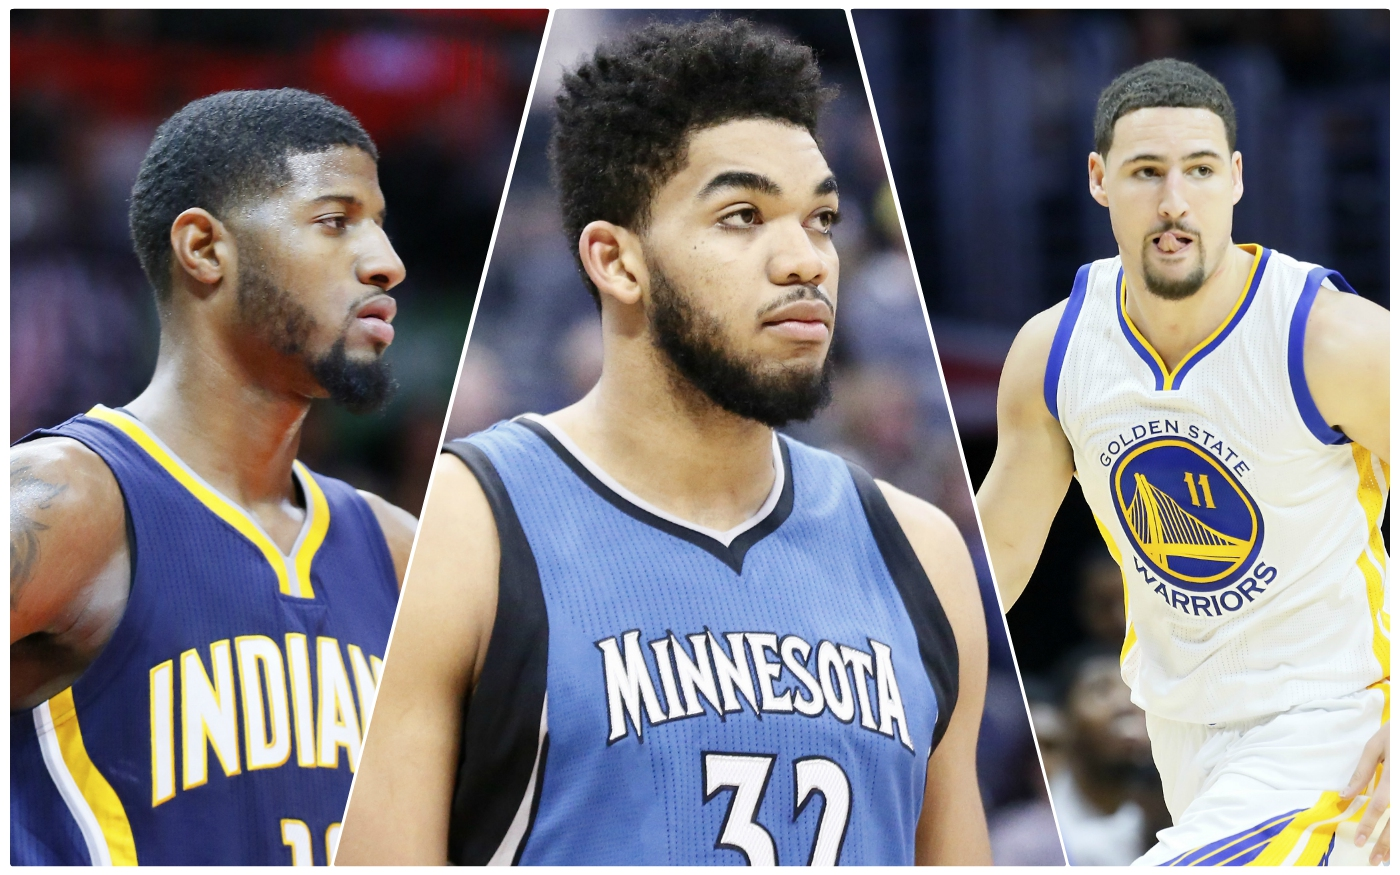 PG, KAT, Klay : Les snobés des All-NBA Teams